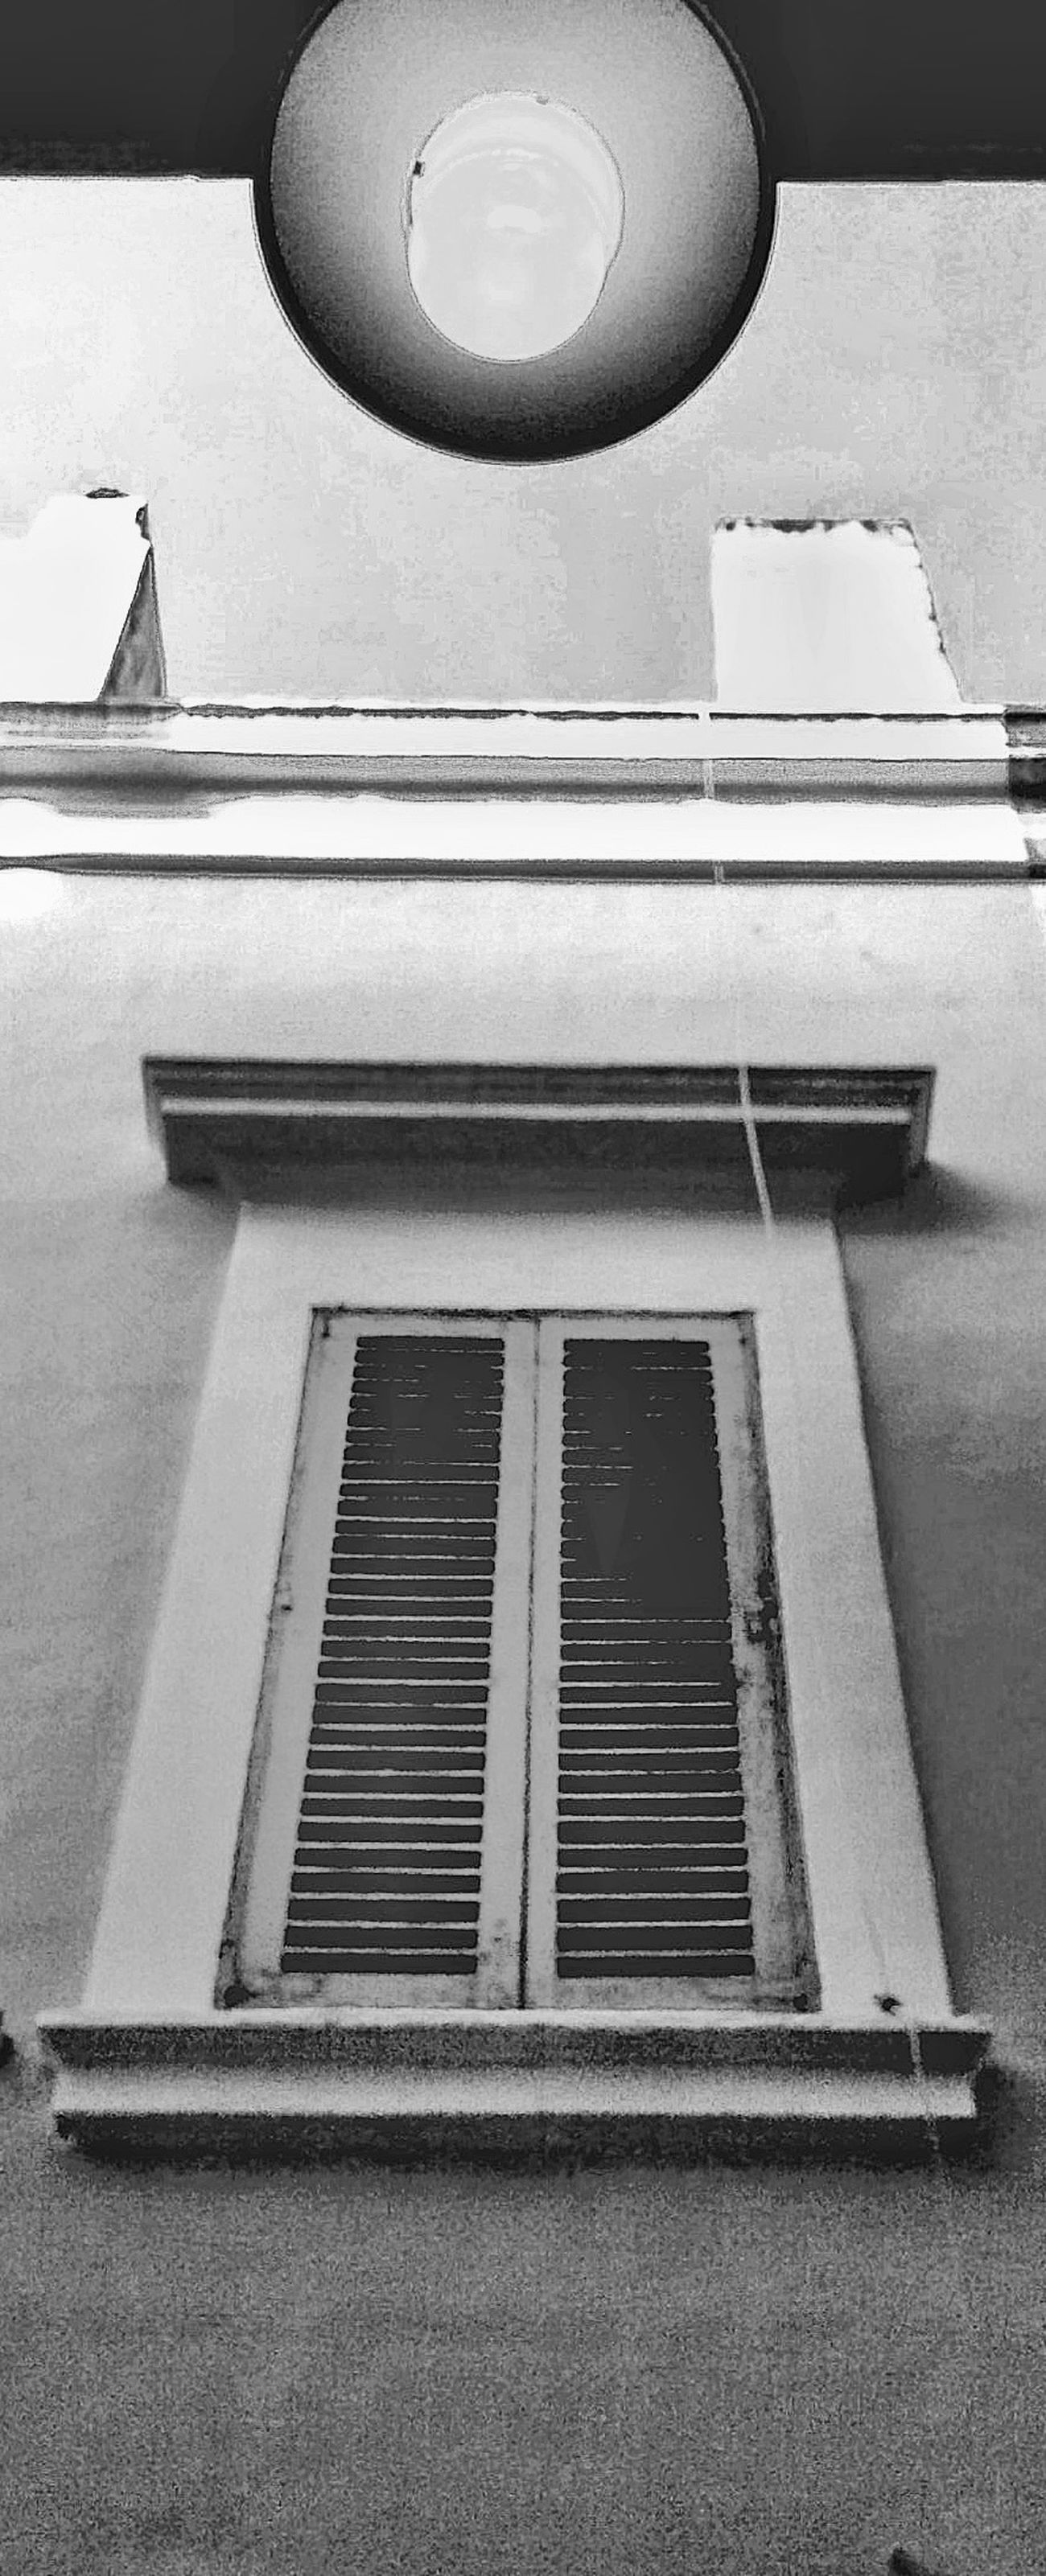 Something Like Symmetry Old Building Charms Old Window Walking By Home Town Low Angle Perspective Architecture Outdoors Strange Days Antique Old Built Structure Old Fashionedpicture becoming paint